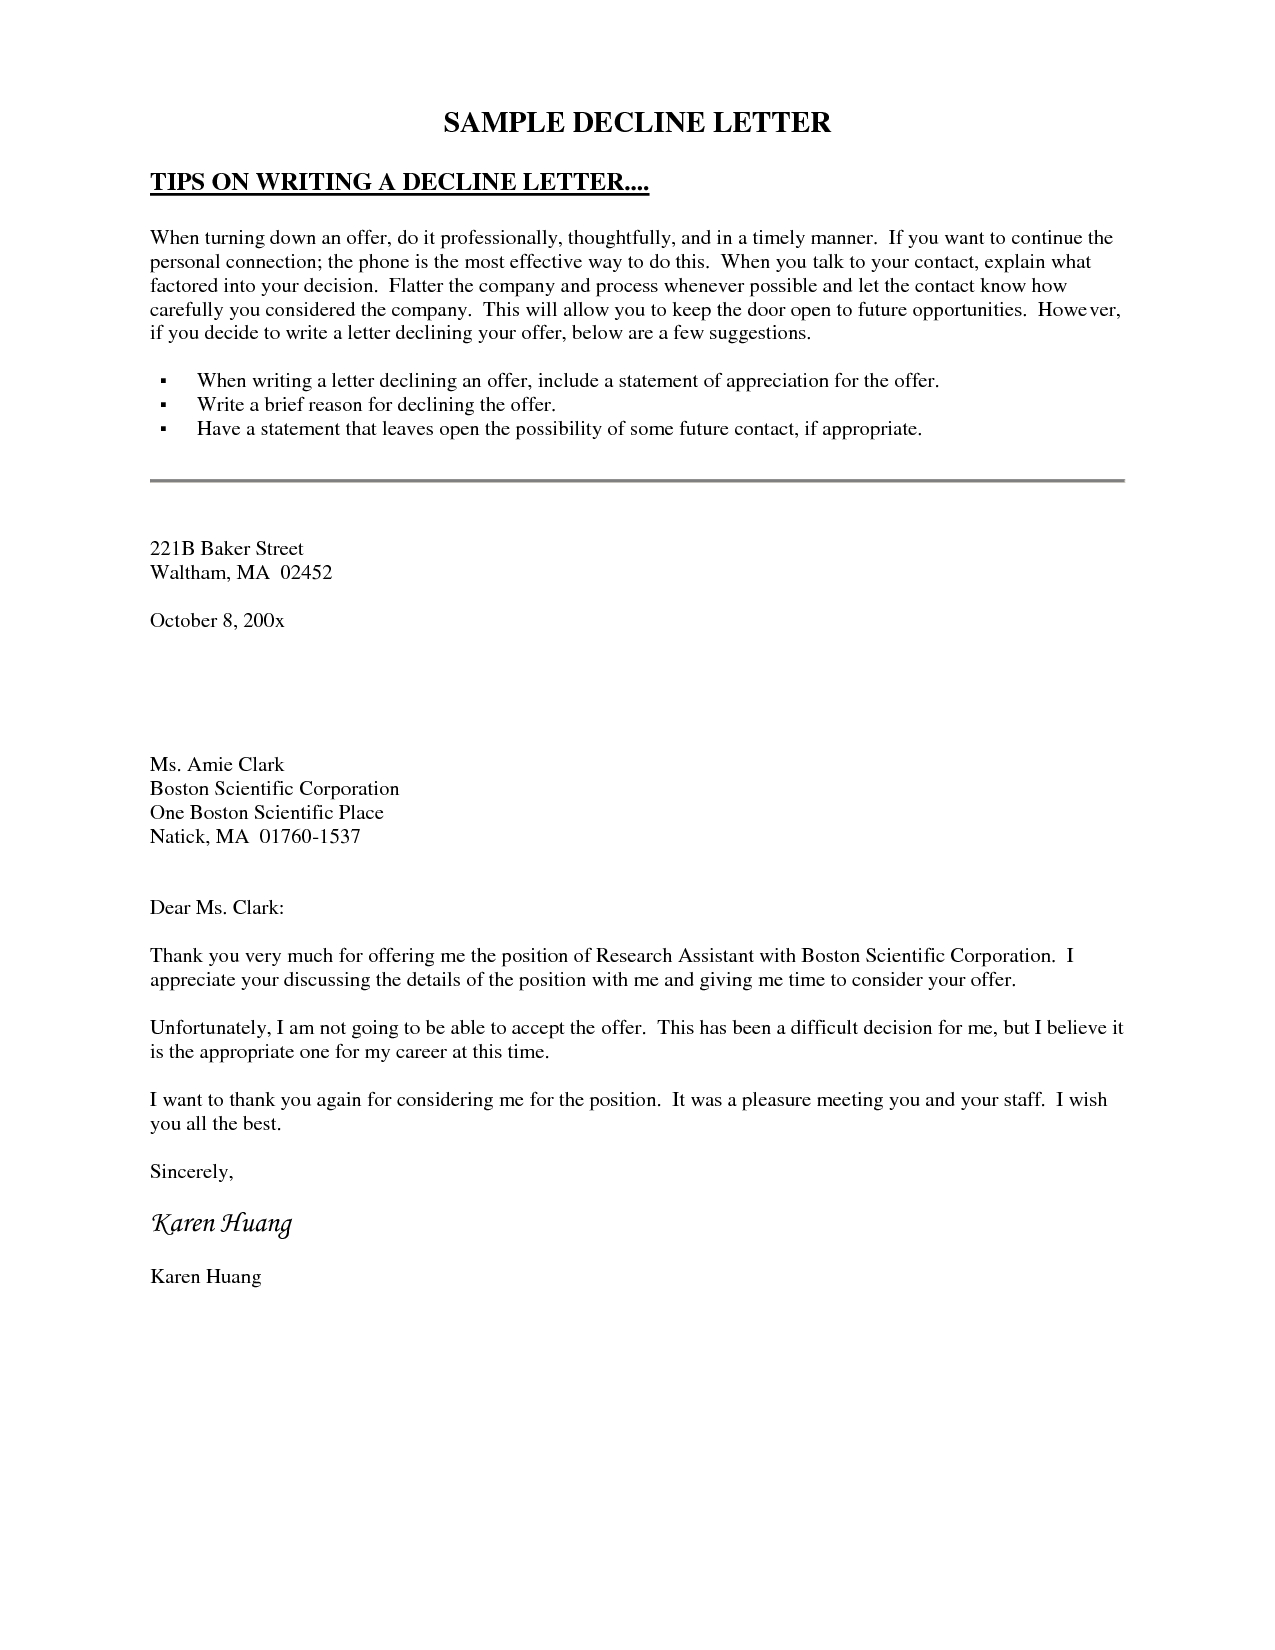 board member invitation letter template example-Decline Invitation Letter This letter template declines an invitation to serve on an organization s board of directors due to other mitments 14-f